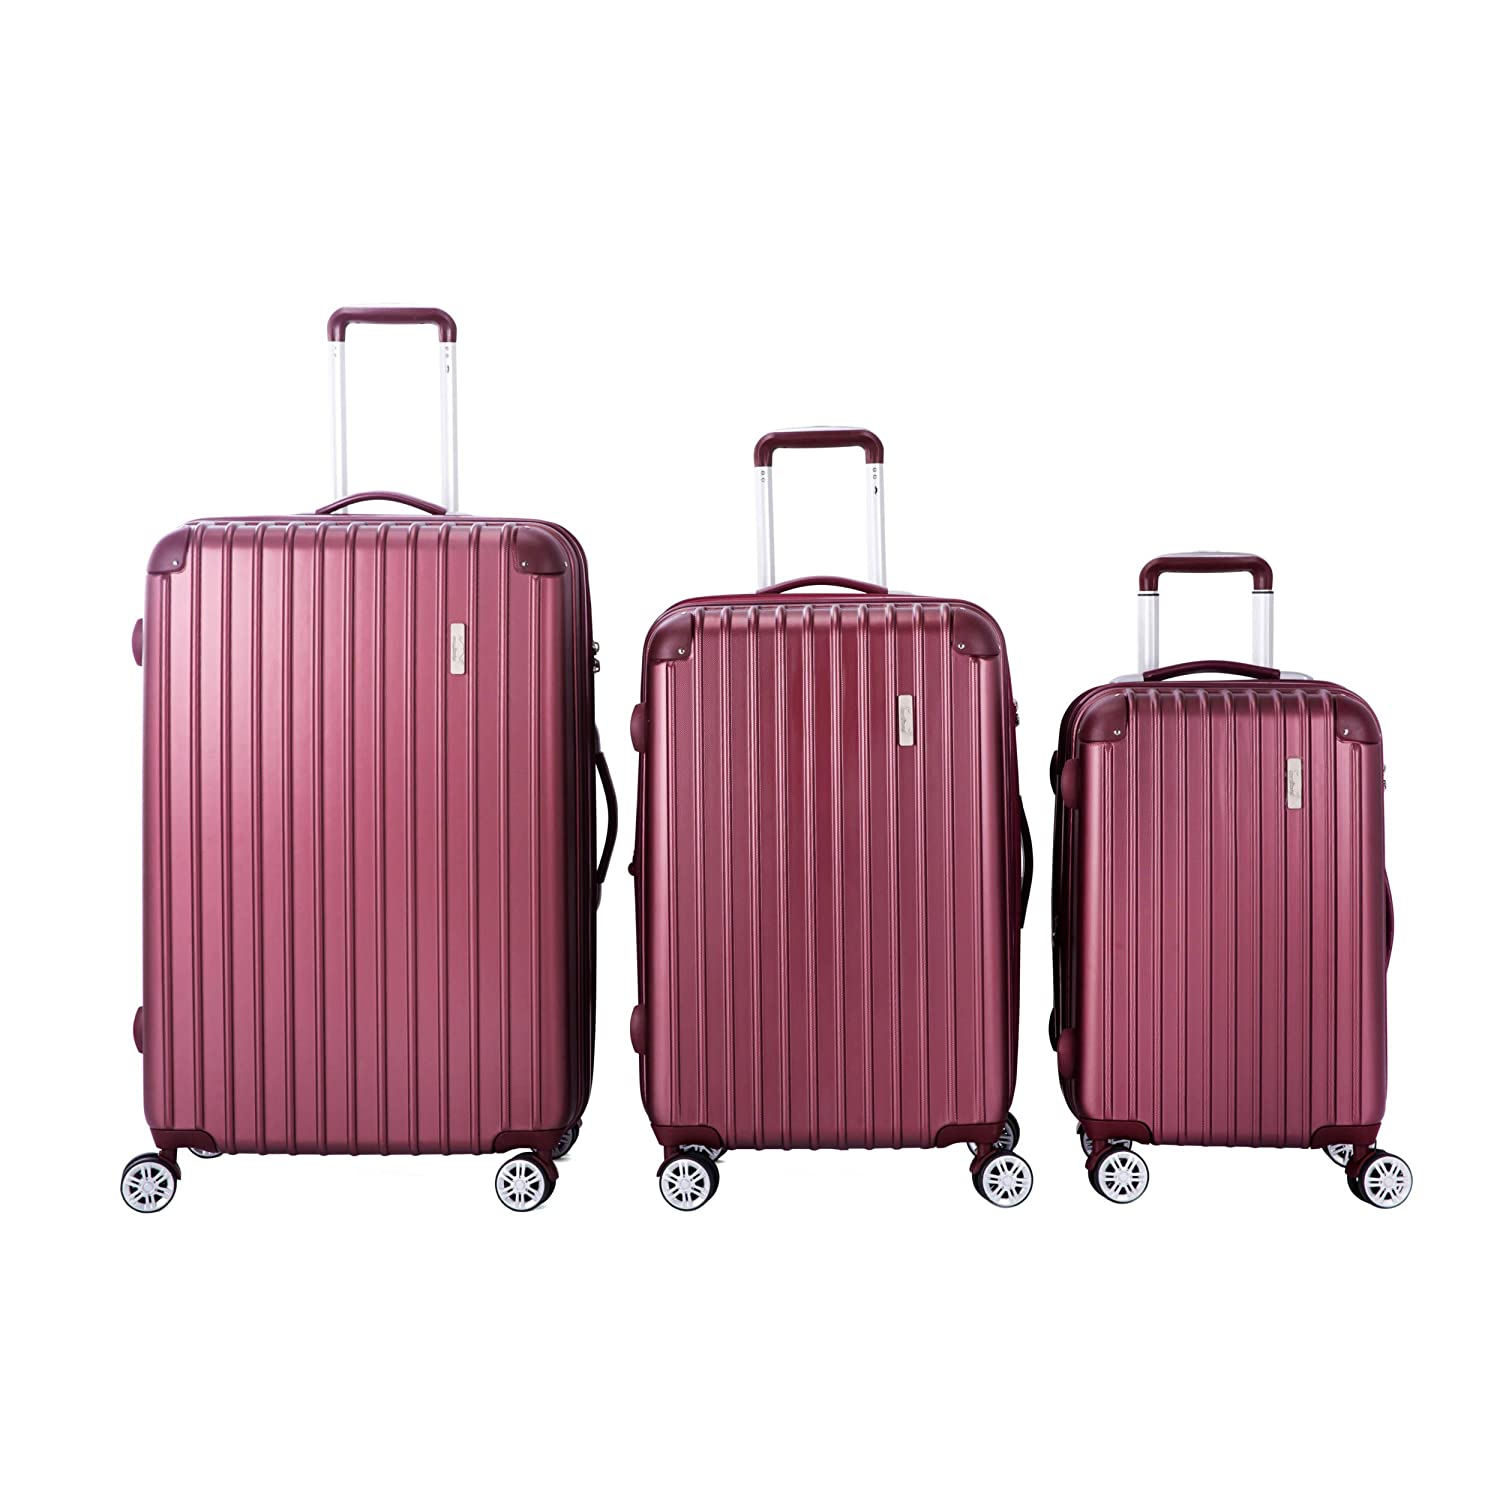 Moustache Hardside Spinner Luggage Sets 3-Piece Set, ABS Hard Shell - Large, Medium and Carry On Suitcase with Wheels,TSA Lock, and Telescopic Handle 20-inch, 24-inch, 28-inch (Wine Red)